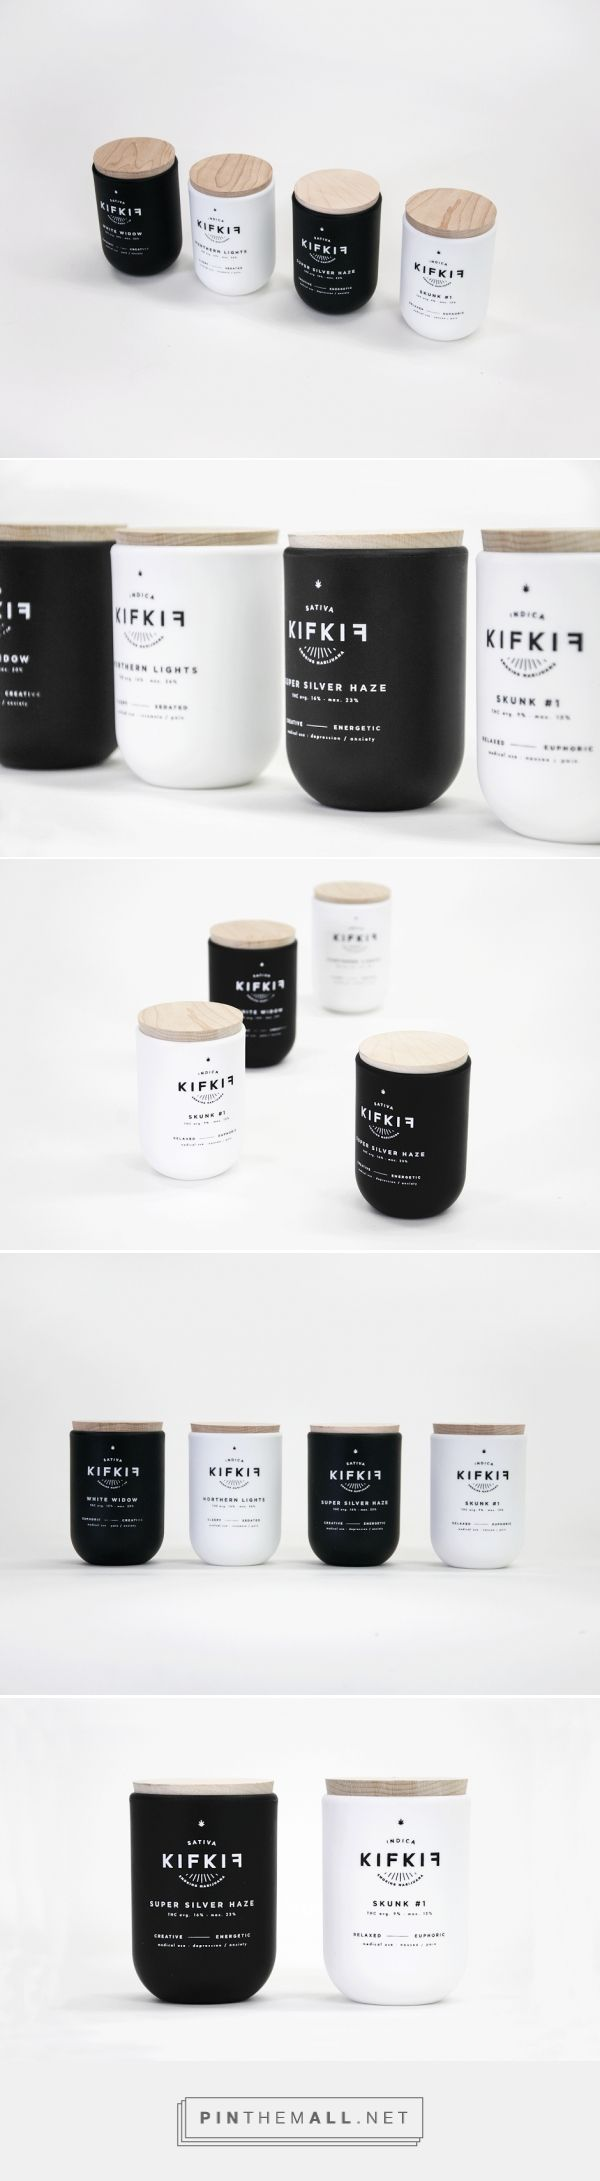 Kif Kif (Student Project) - Packaging of the World - Creative Package Design Gallery - http://www.packagingoftheworld.com/2016/05/kif-kif-student-project.html